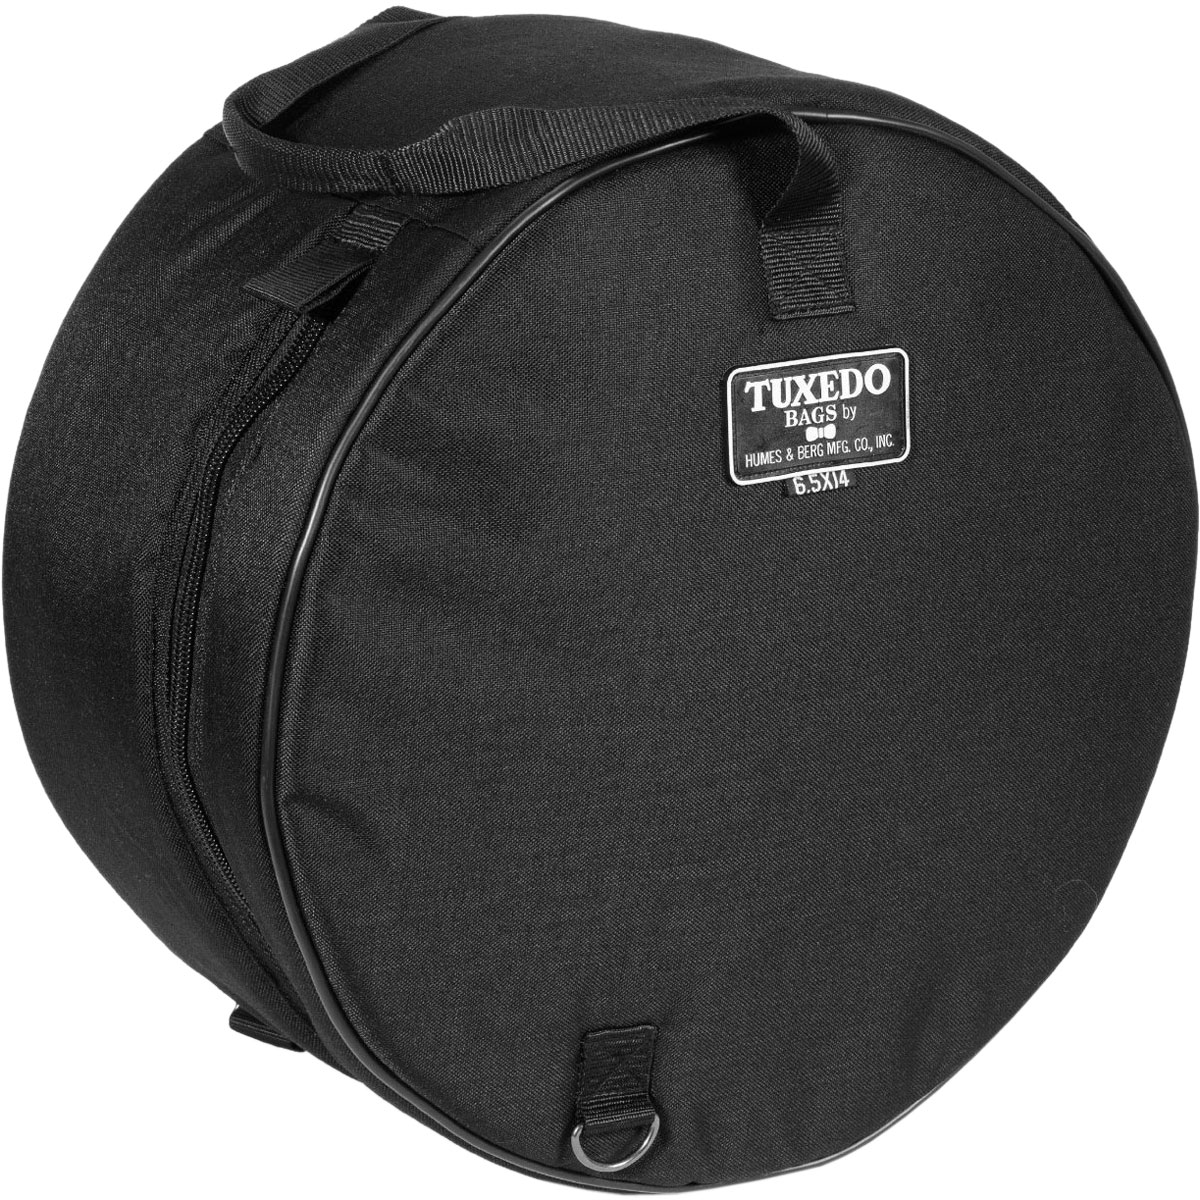 "Humes & Berg 5.5"" (Deep) x 14"" (Diameter) Tuxedo Snare Bag/Soft Case"